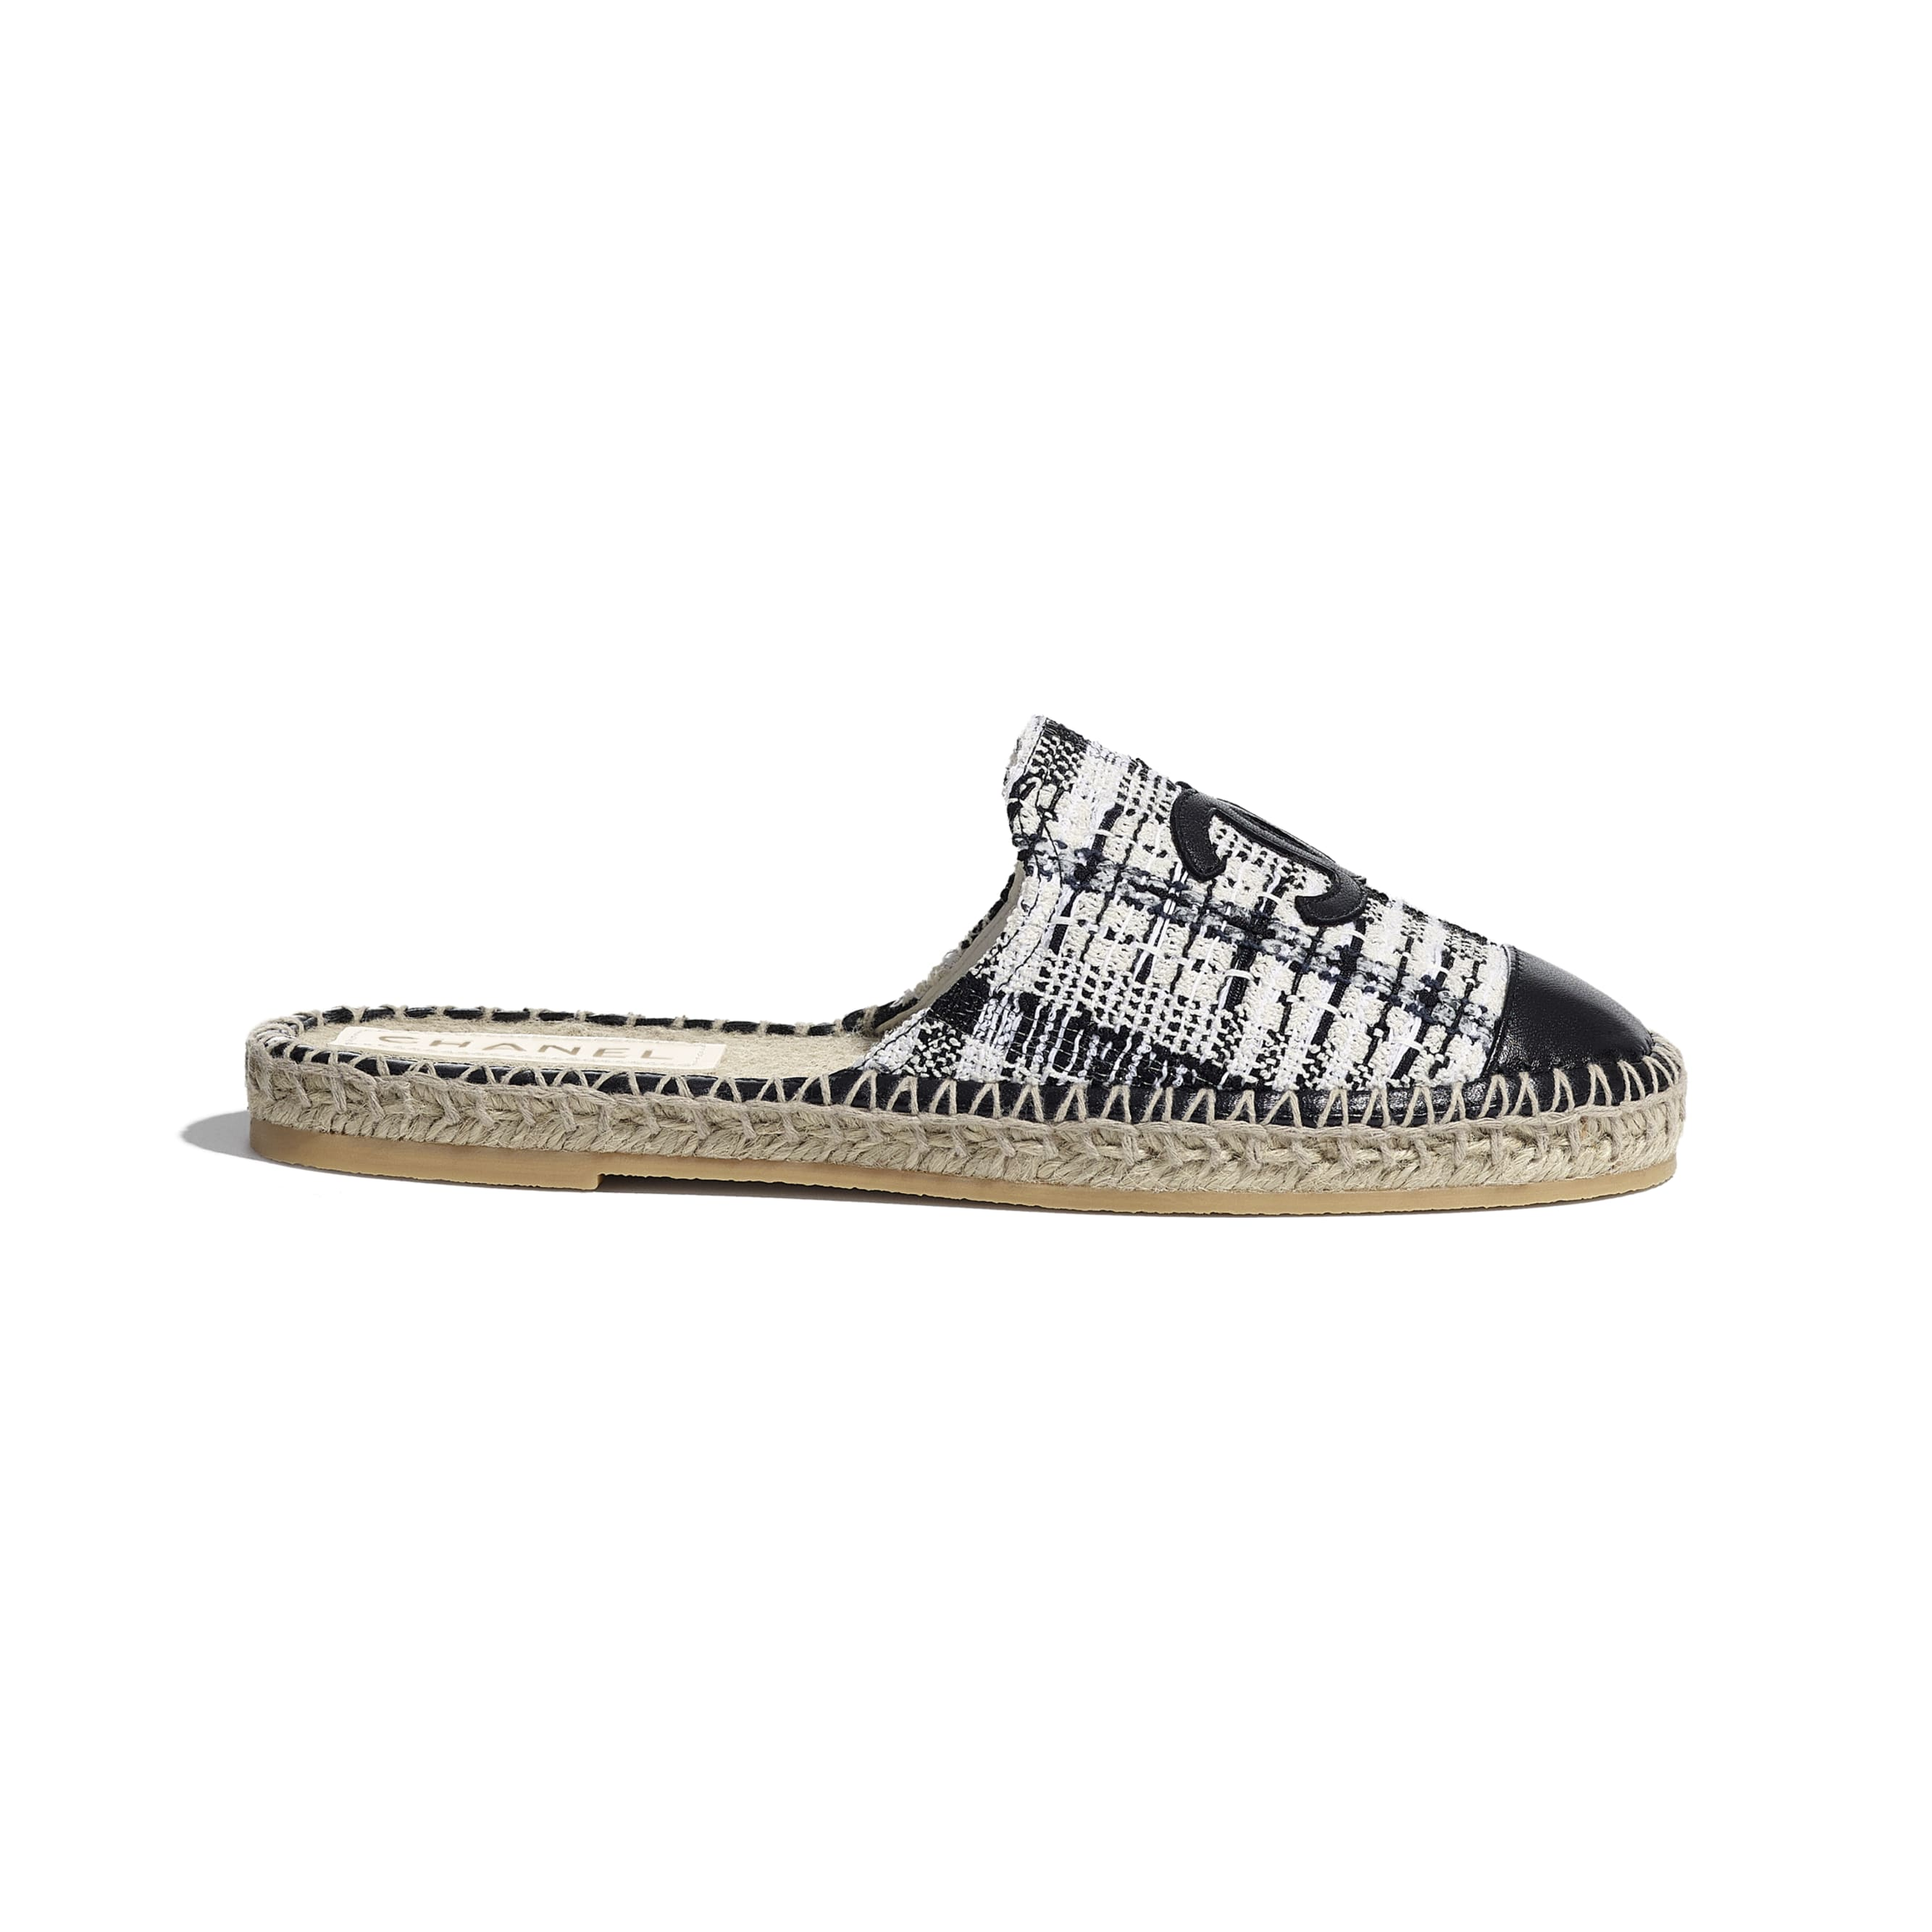 Espadrilles - Ivory, Grey & Black - Tweed & Lambskin - CHANEL - Default view - see standard sized version